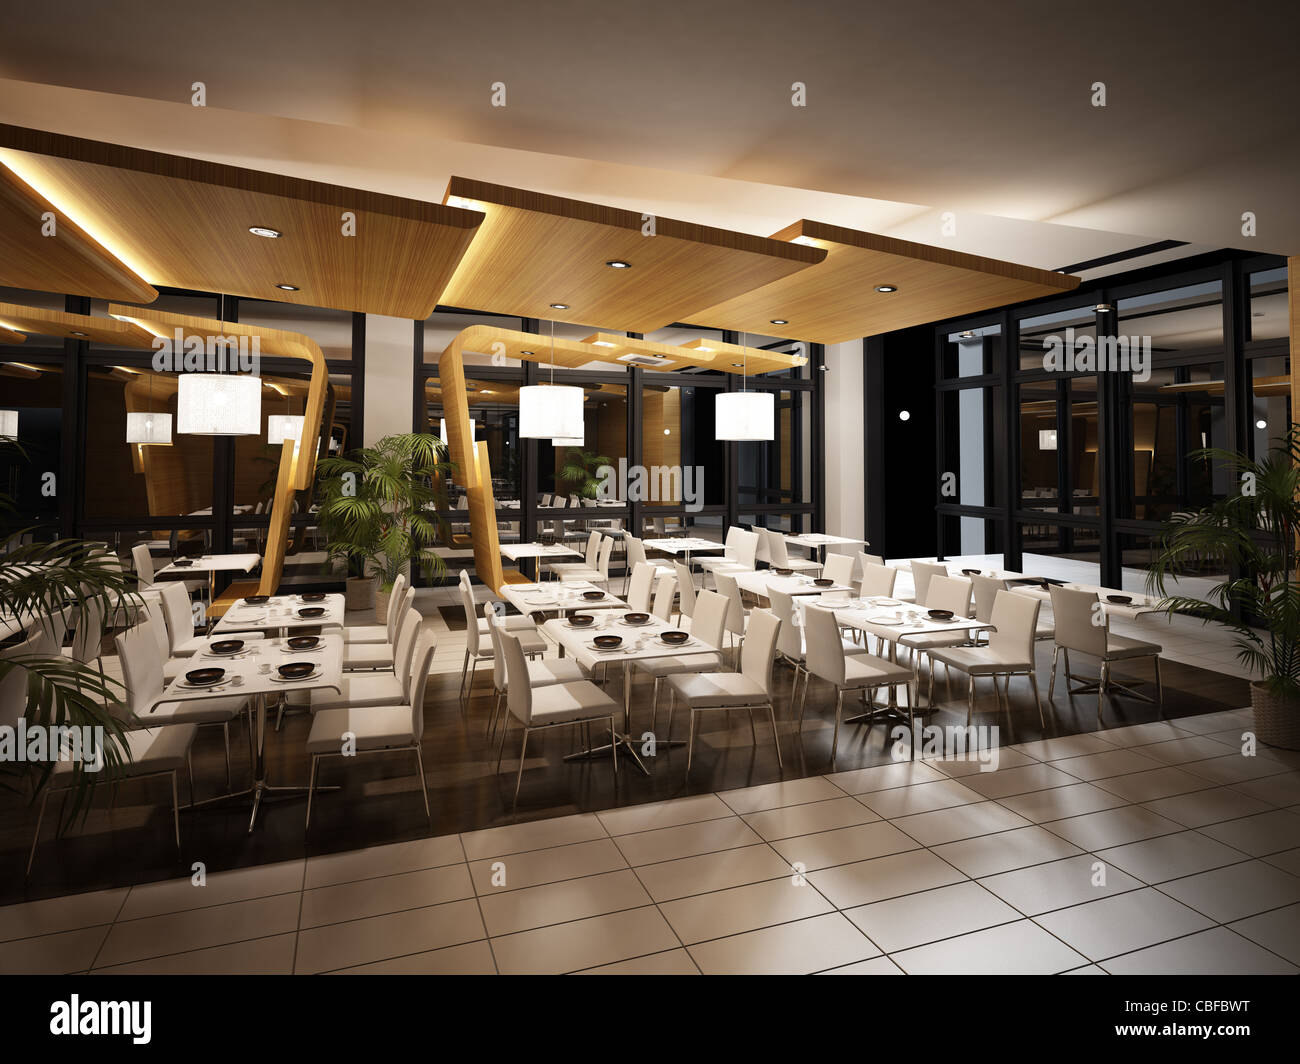 modern restaurant interior view night time scene with warm artificial lighting mirrors and plants all around no people